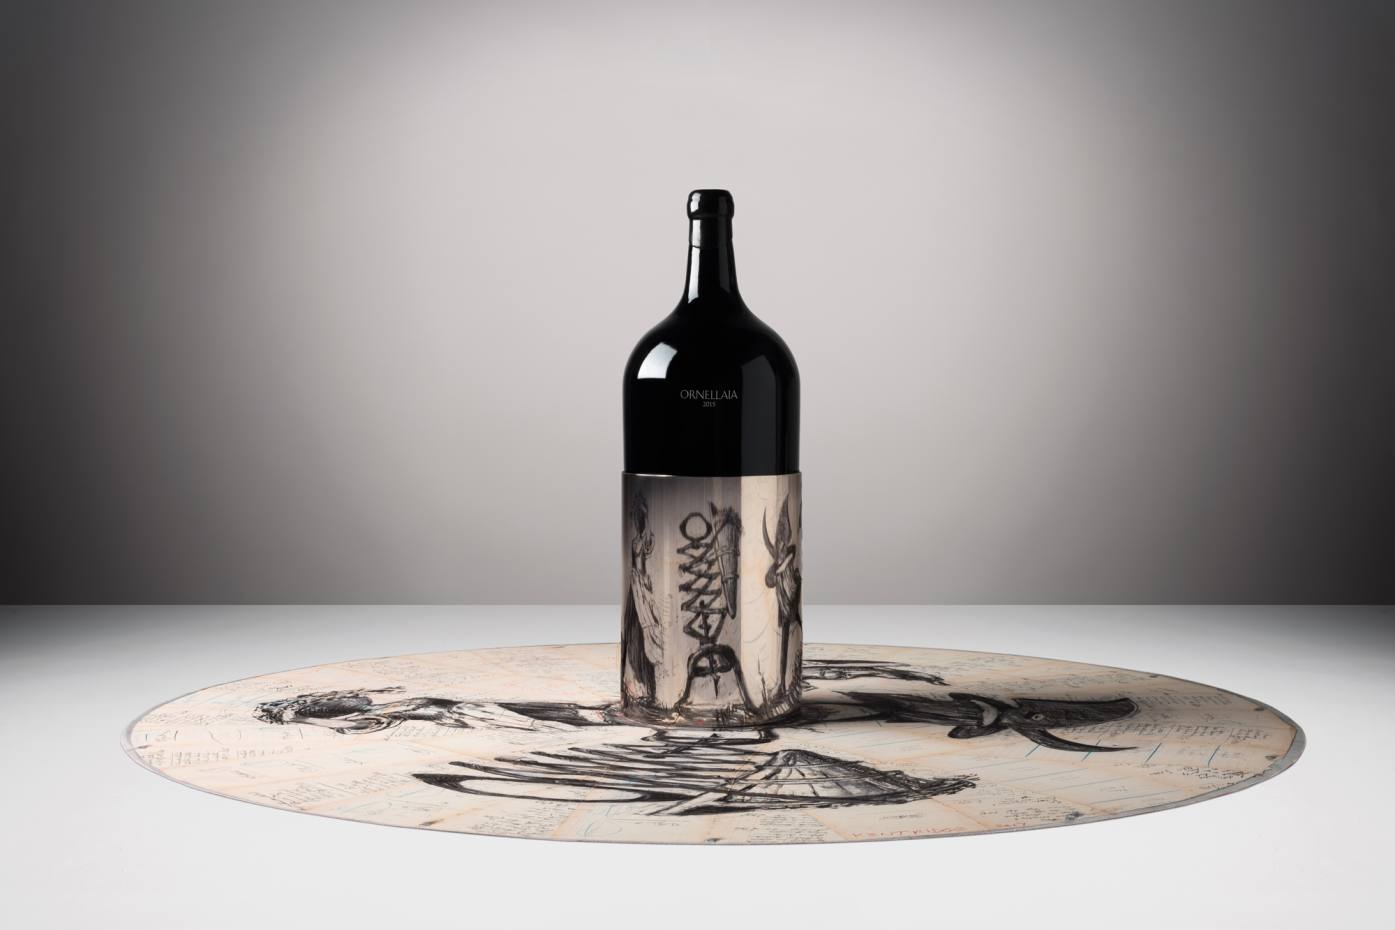 The limited edition Ornellaia 2015 bottles feature labels by the acclaimed artist, whose designs were inspired by taking part in a Tuscan harvest